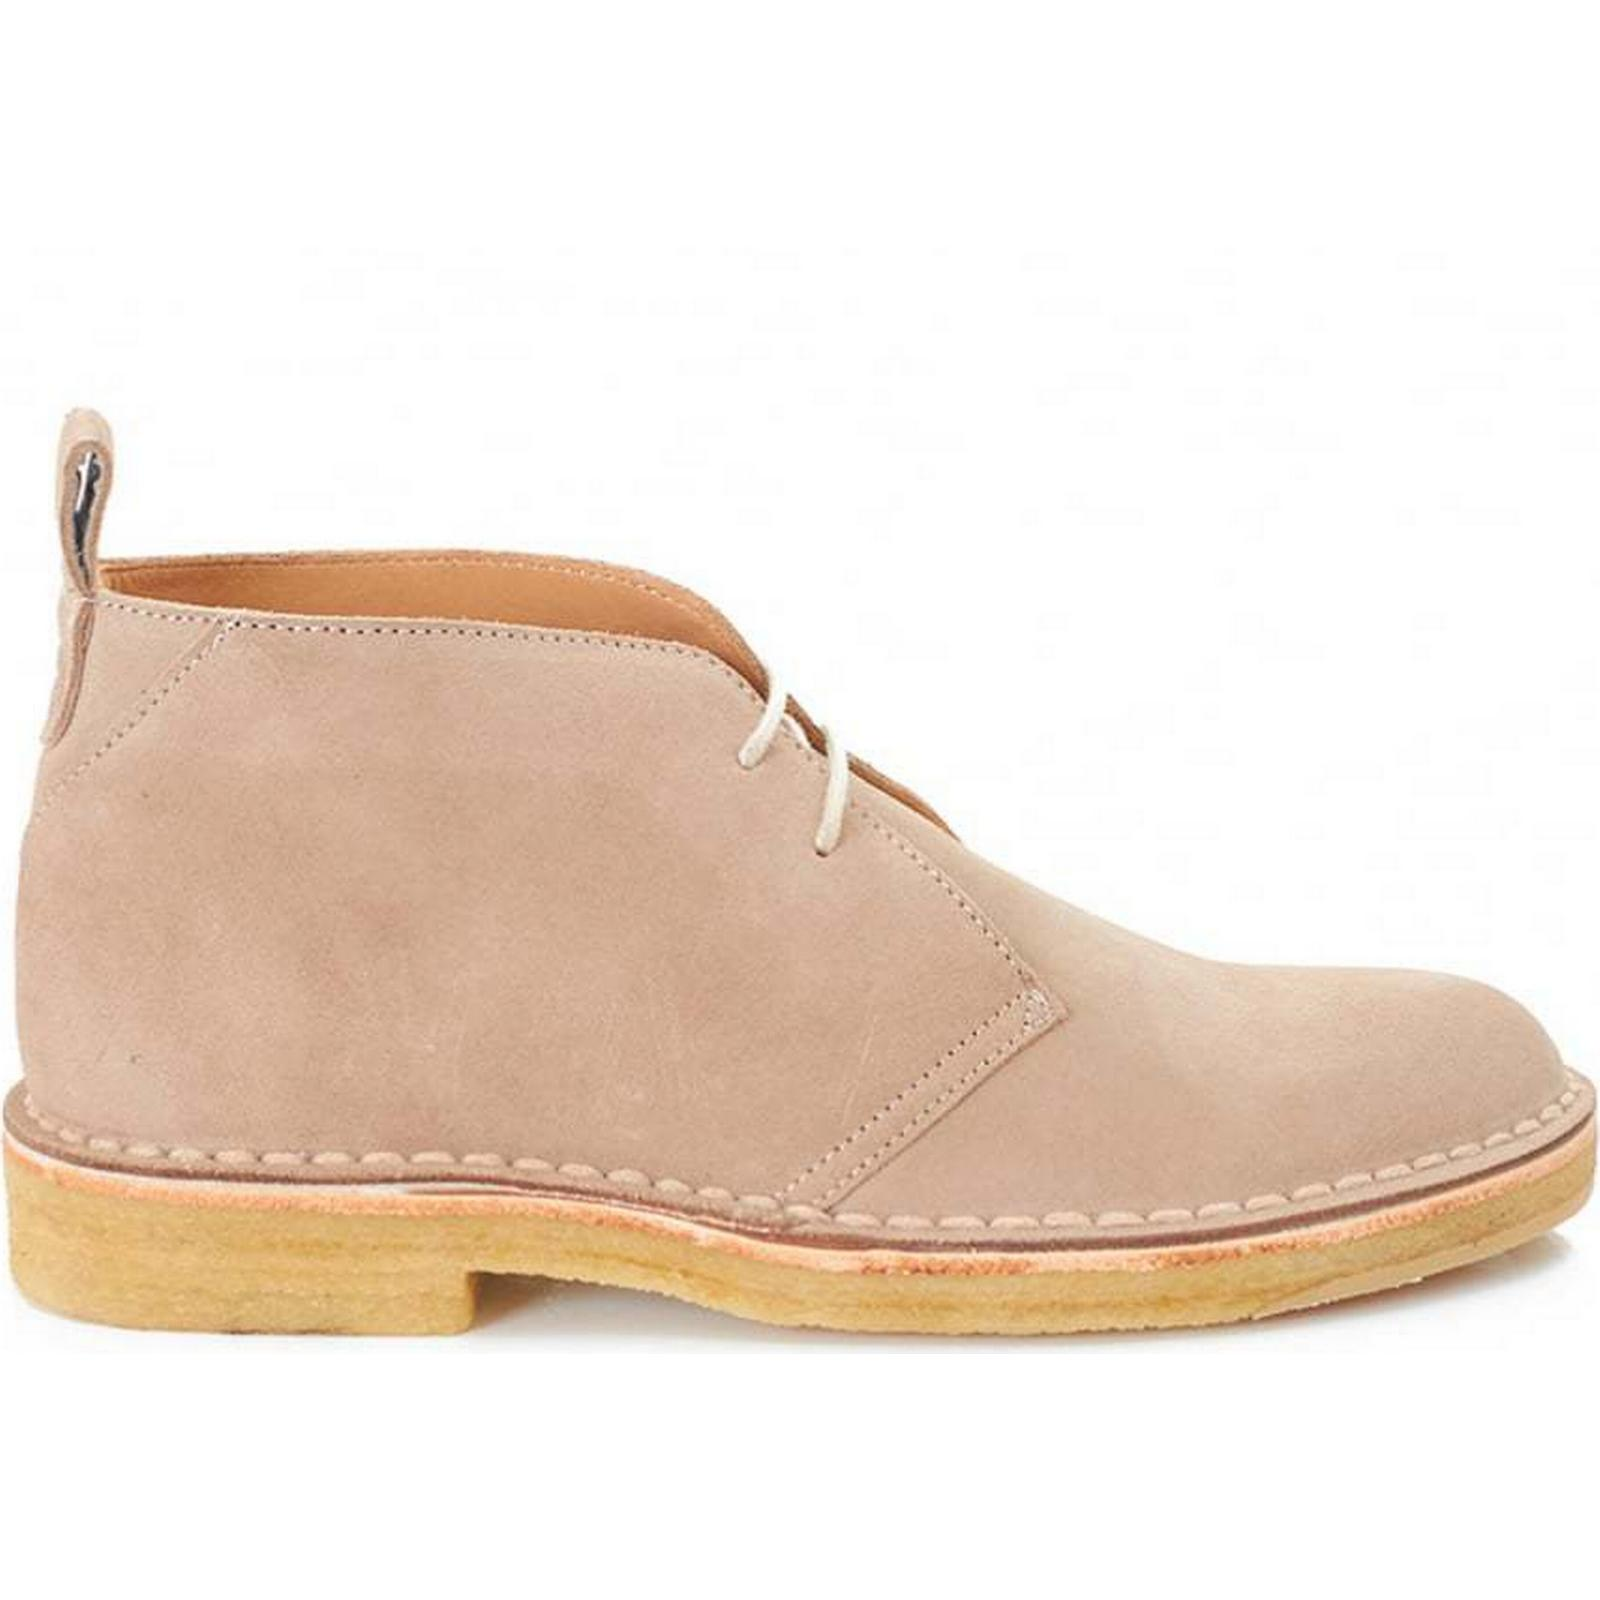 Paul Smith Wilf Suede Crepe Sole 7 Boots Colour: SAND, Size: 7 Sole 6ccd36